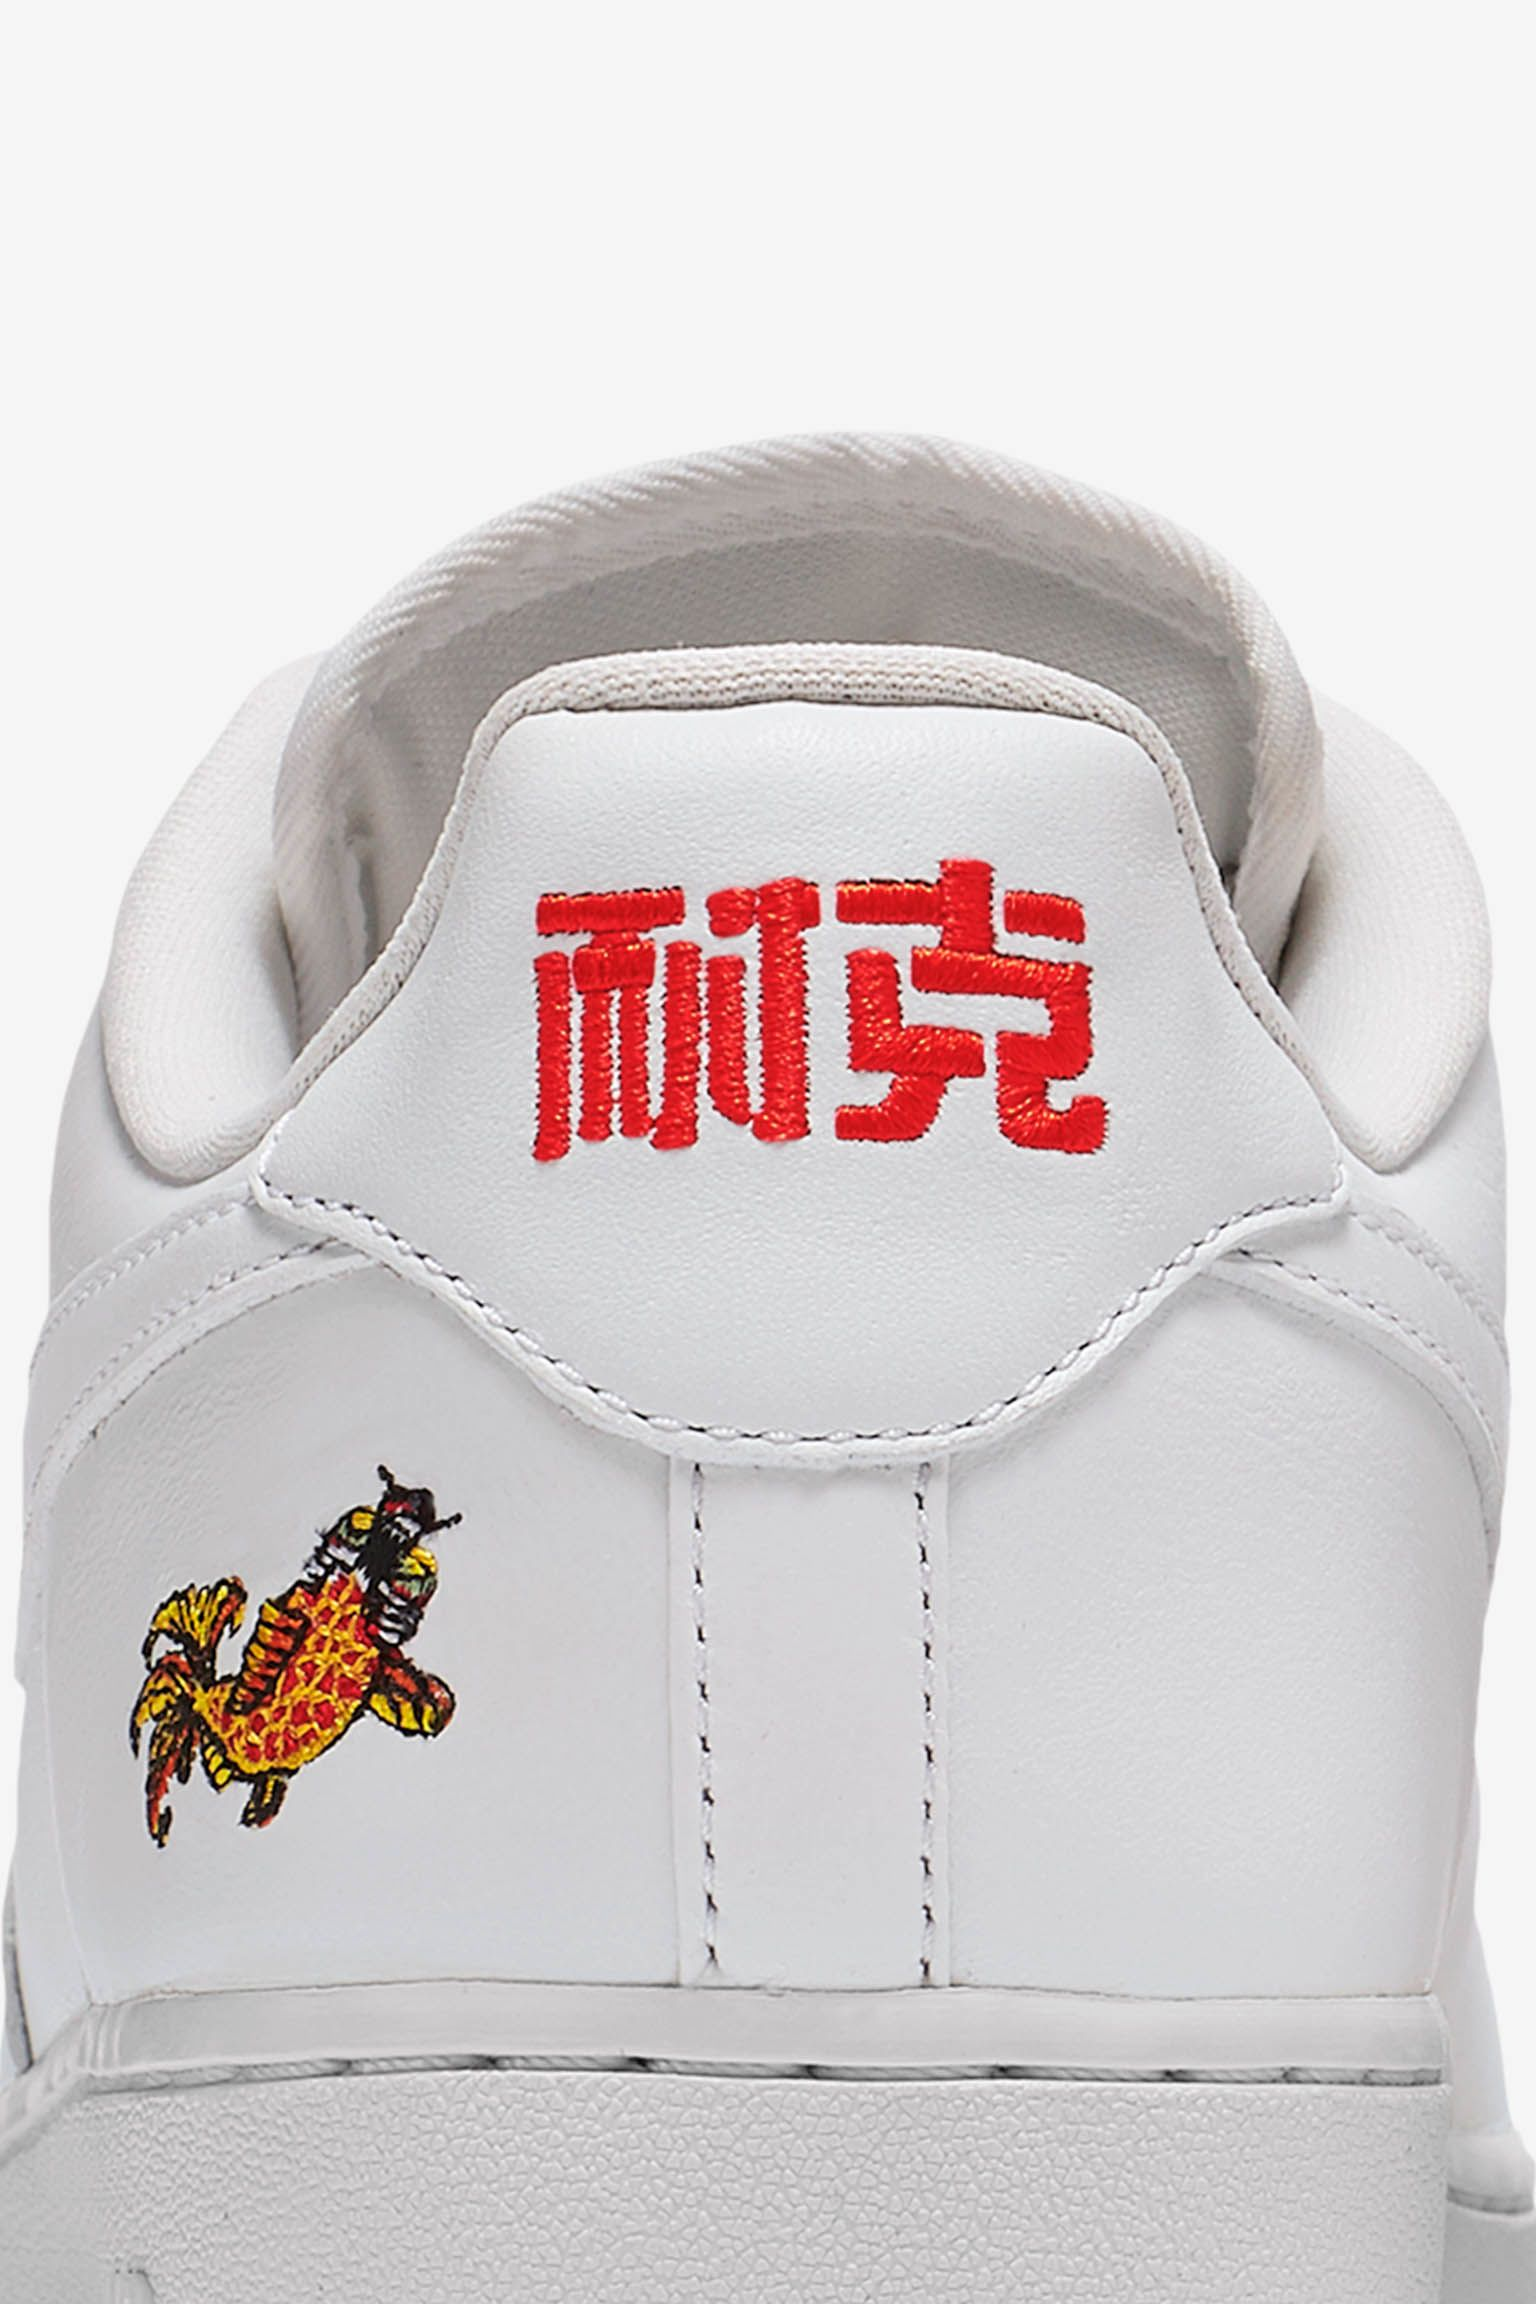 2018 Nike Air Force 1 Low 'CNY' AO9381 100 For Sale